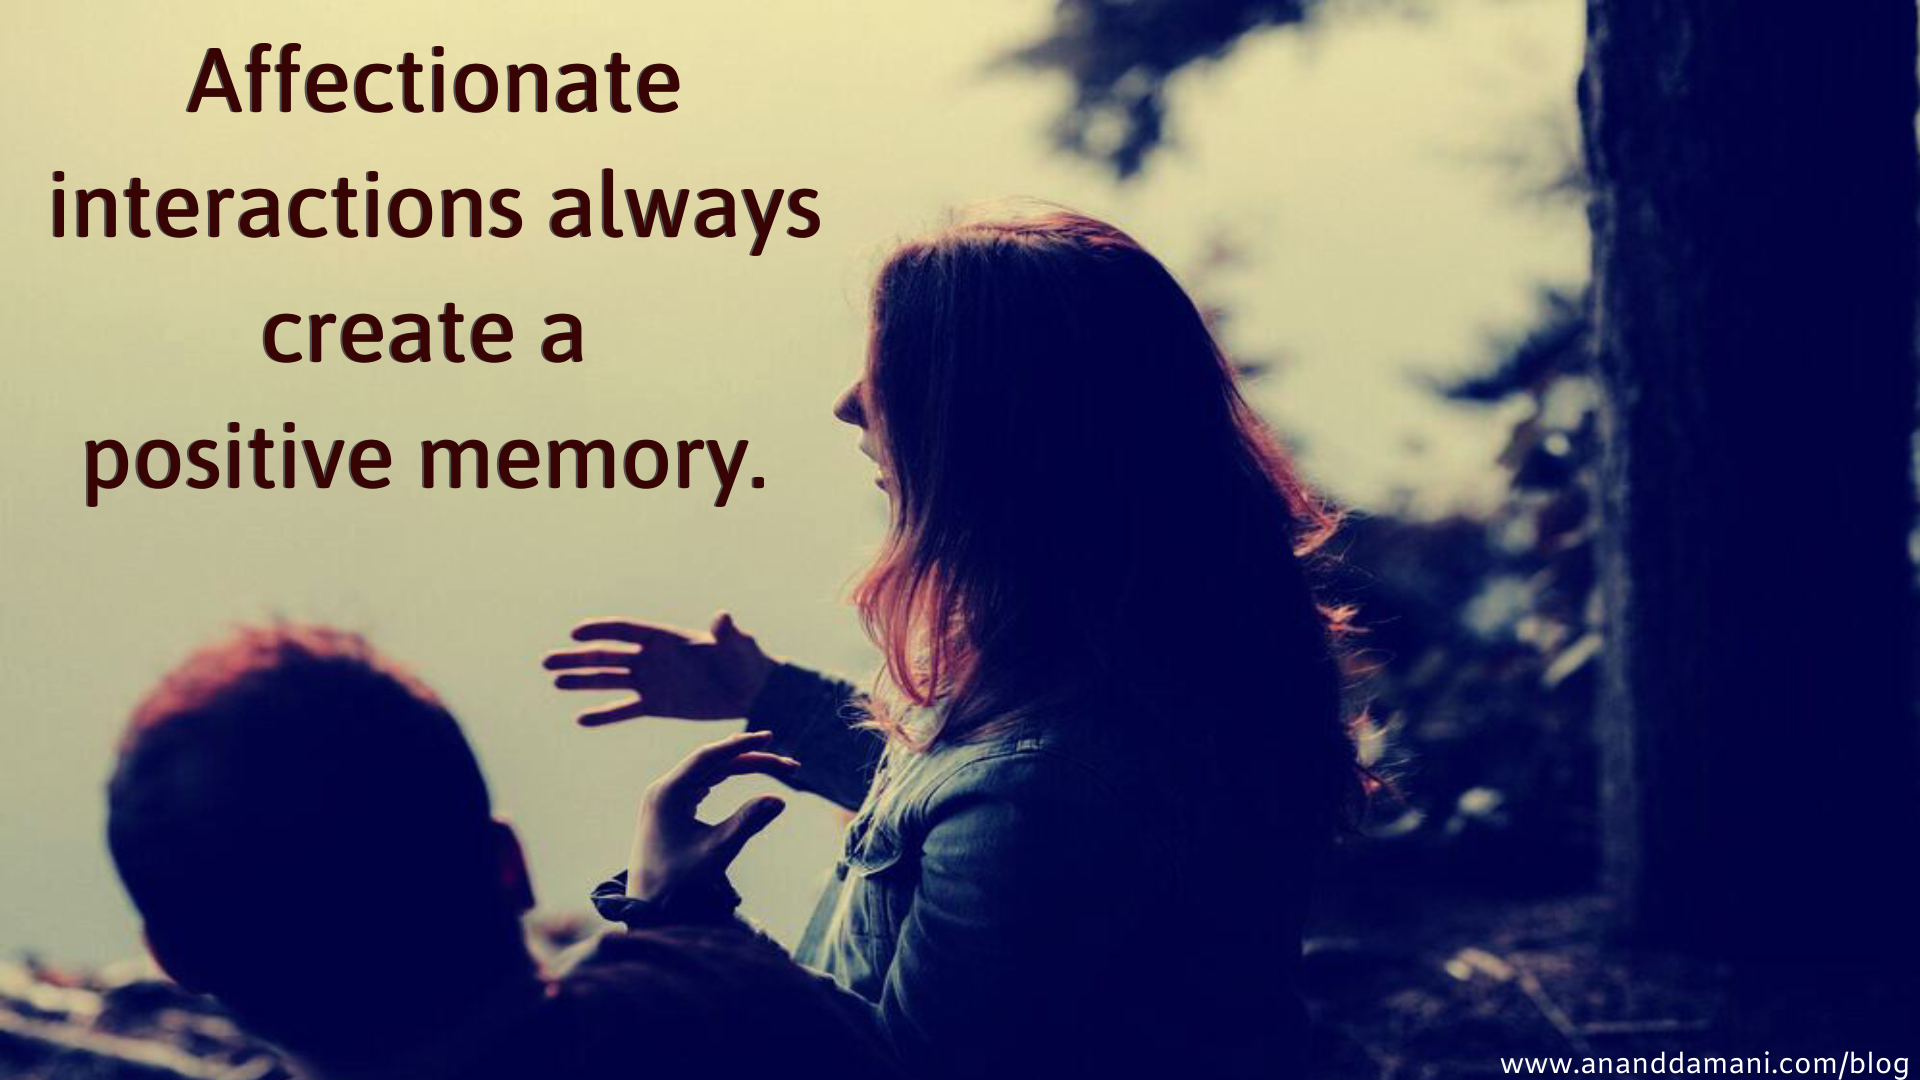 Affectionate interactions and positive memories